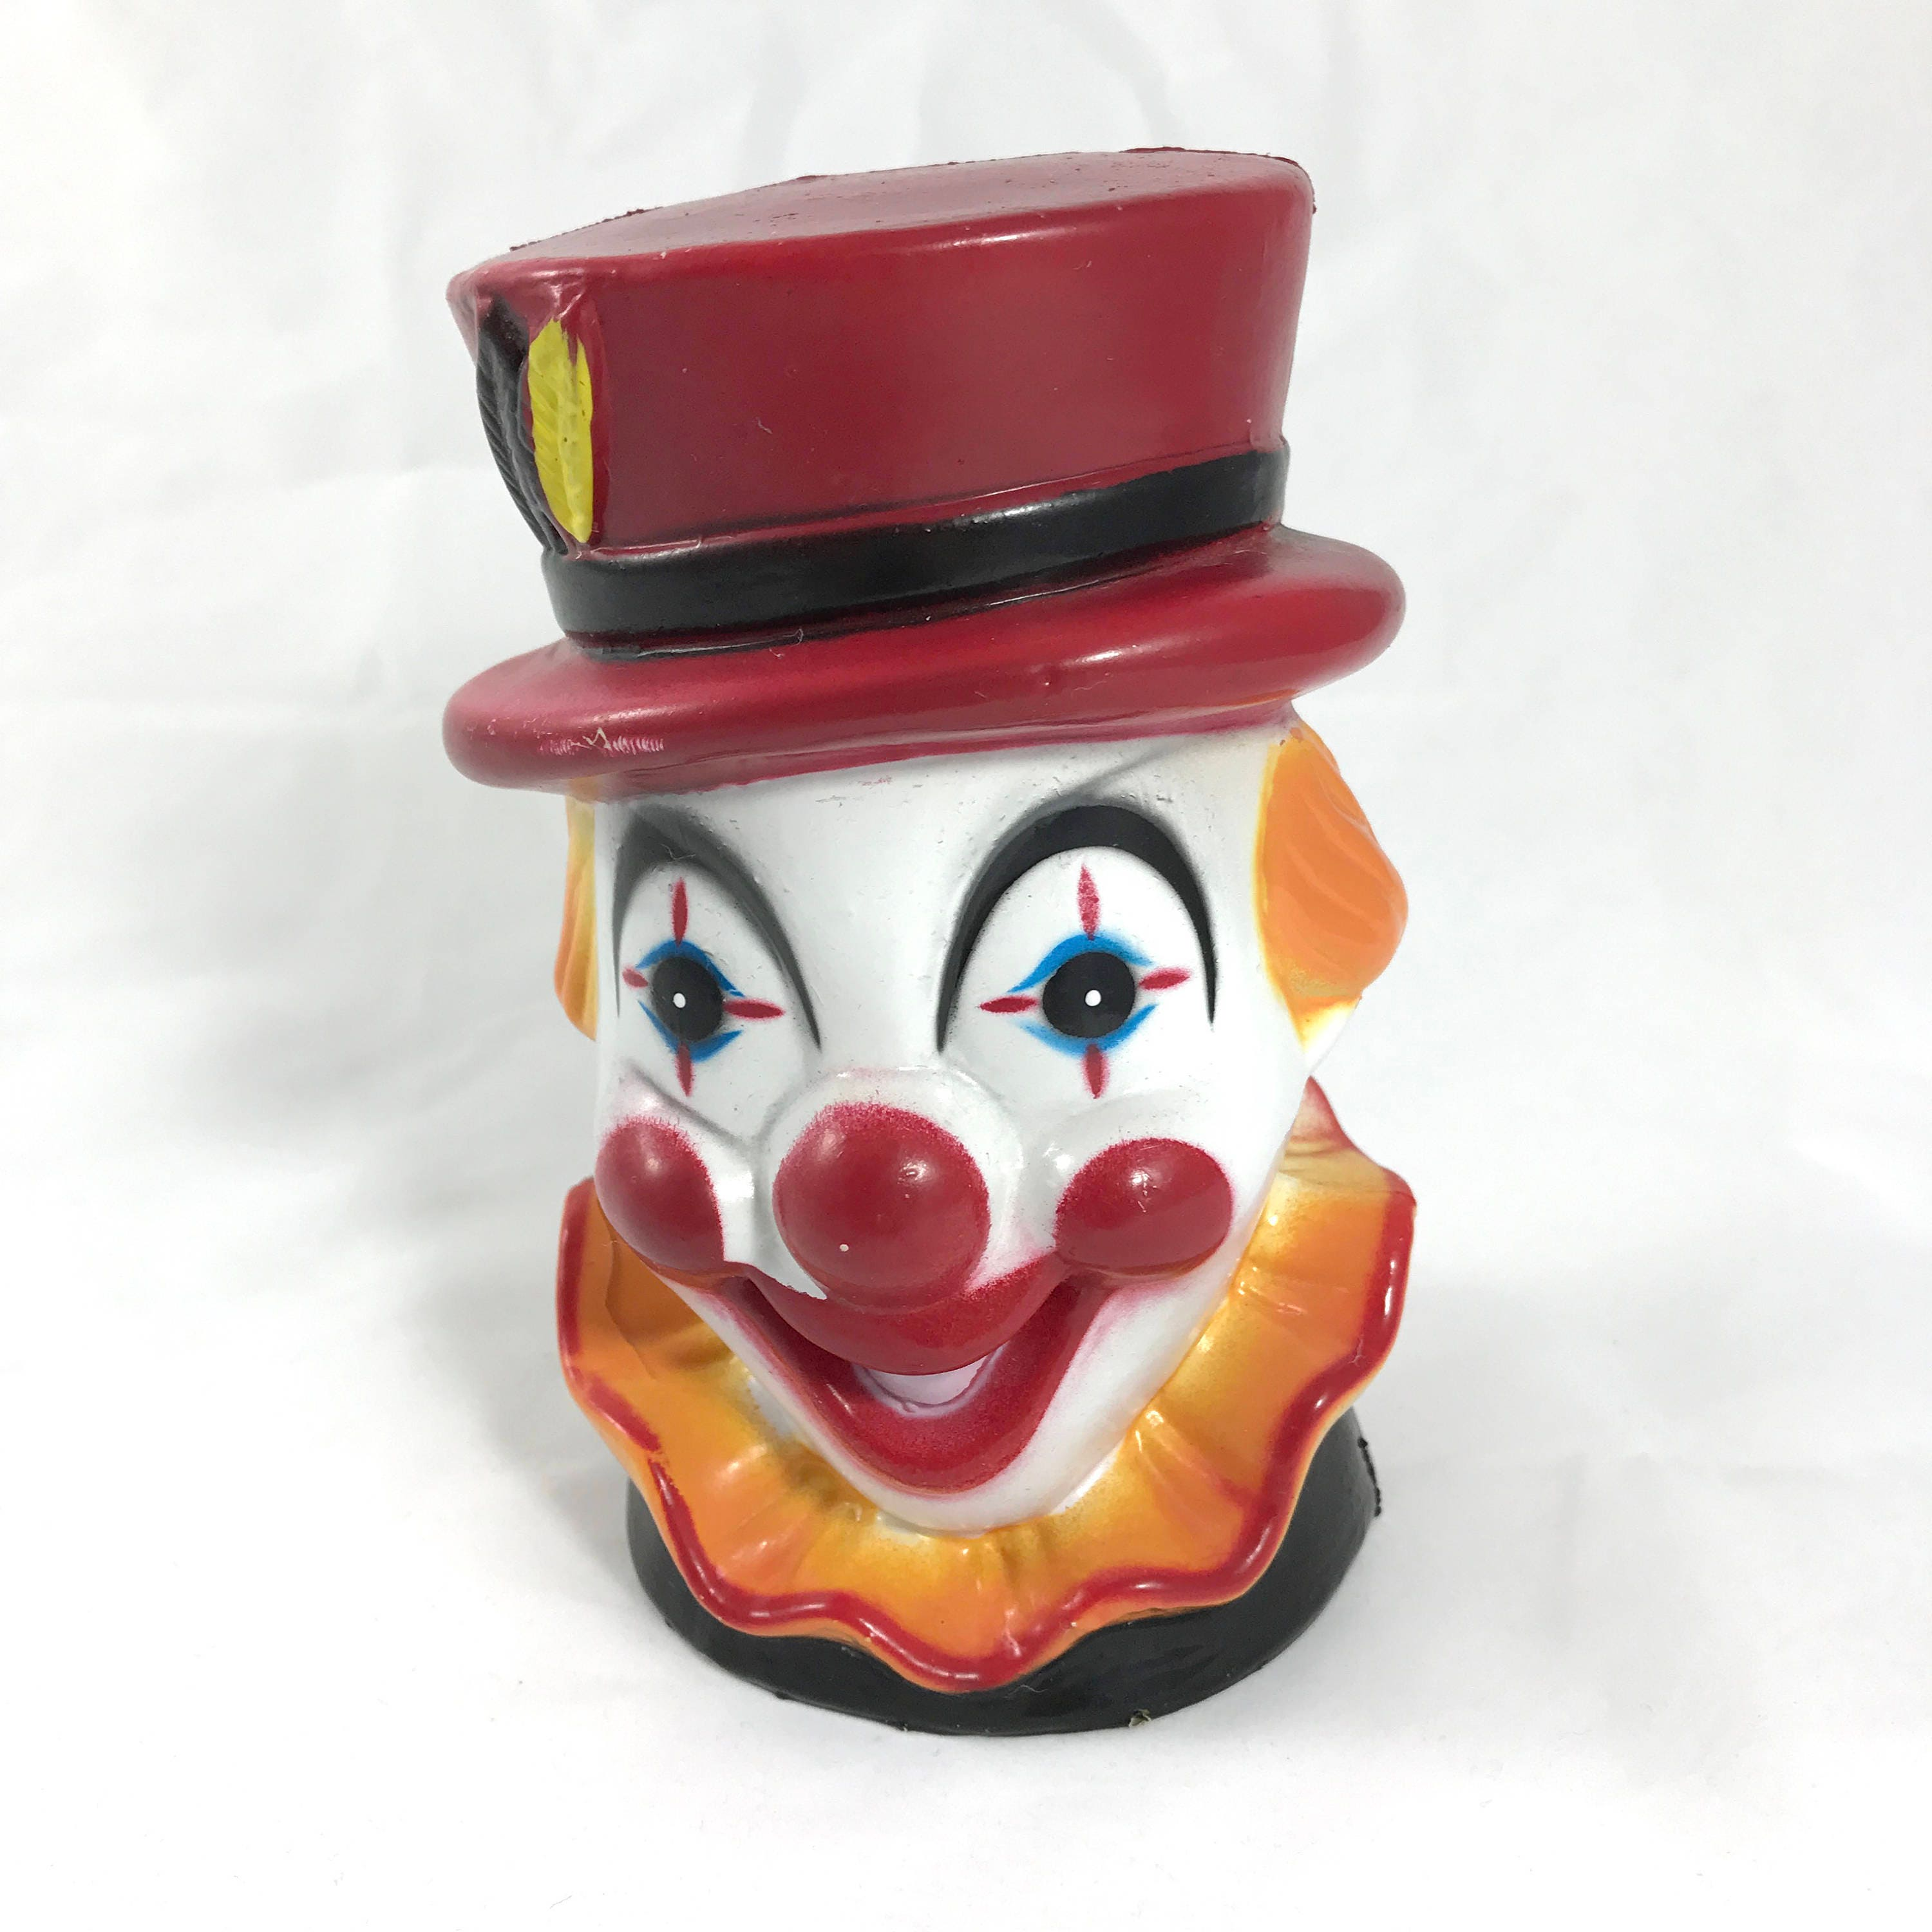 Vintage Creepy Clown Bank - Scary Plastic Circus Themed ...